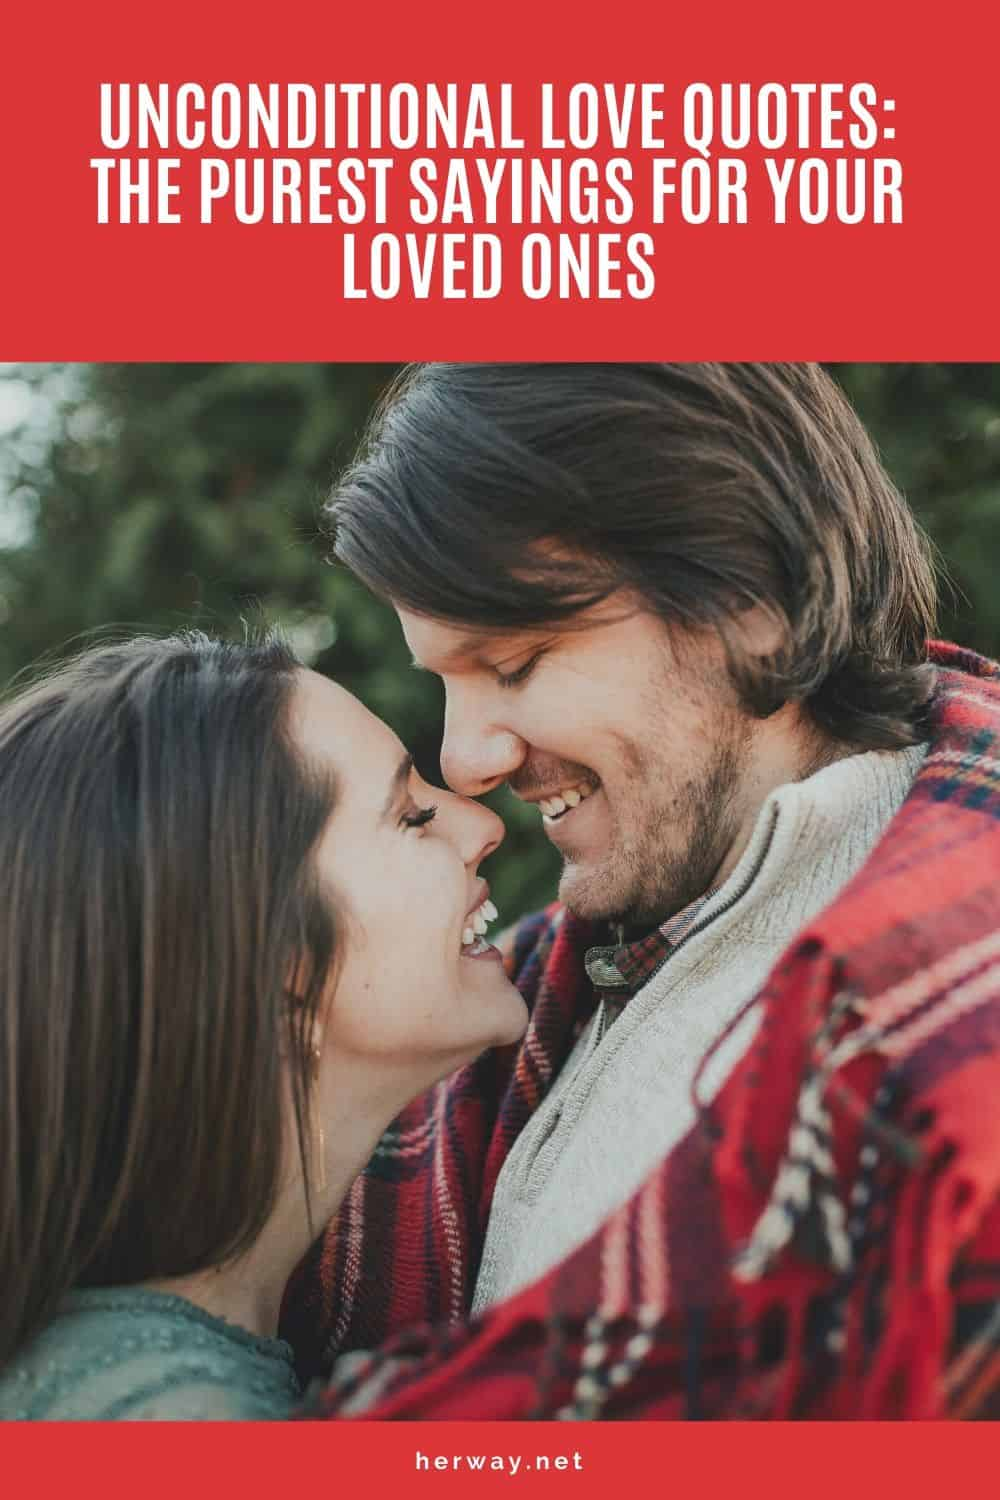 Unconditional Love Quotes The Purest Sayings For Your Loved Ones Pinterest